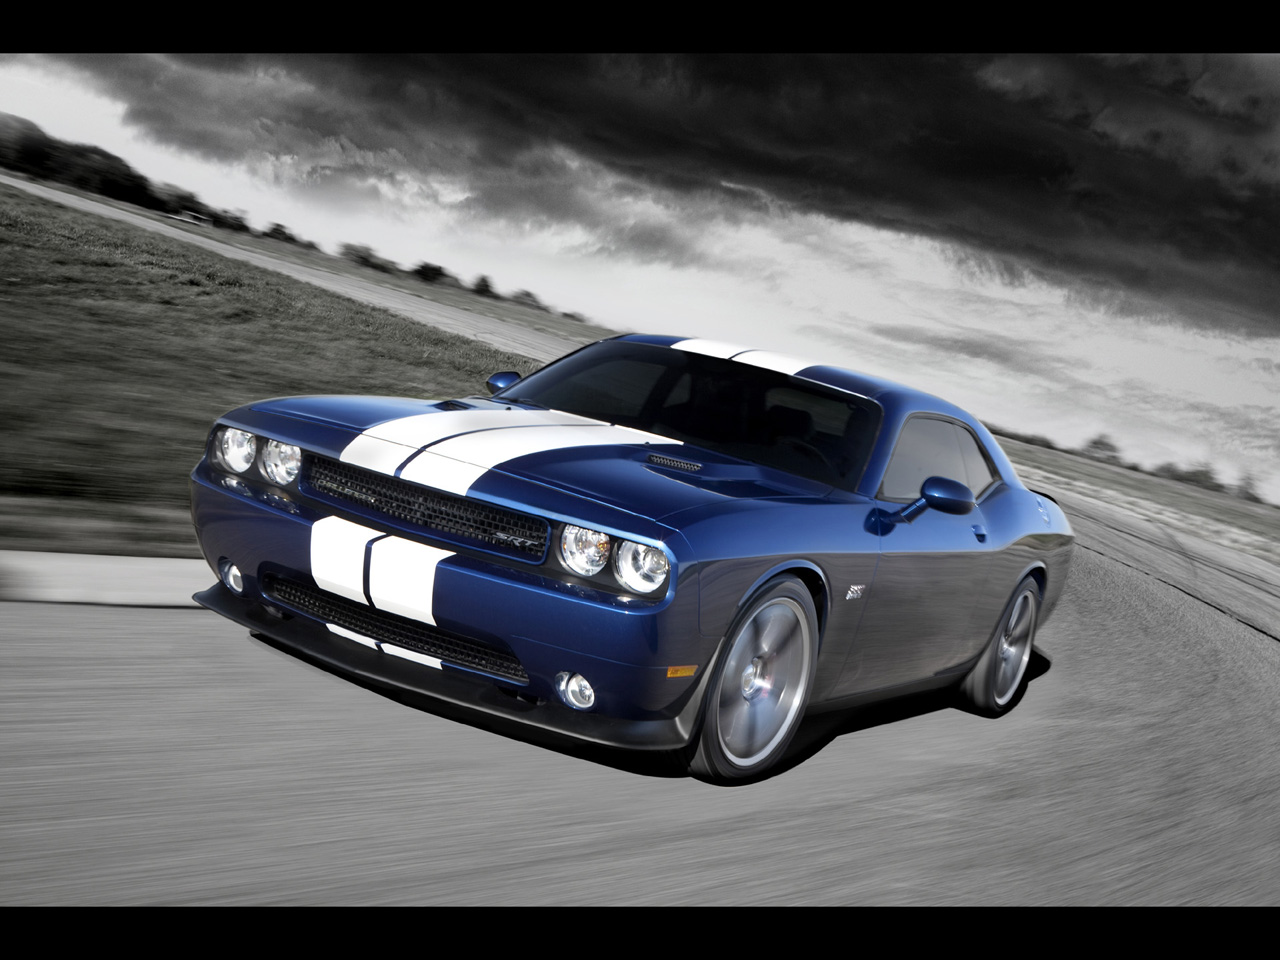 dodge challenger srt8 392 2011 fotos vamos falar sobre carros. Black Bedroom Furniture Sets. Home Design Ideas